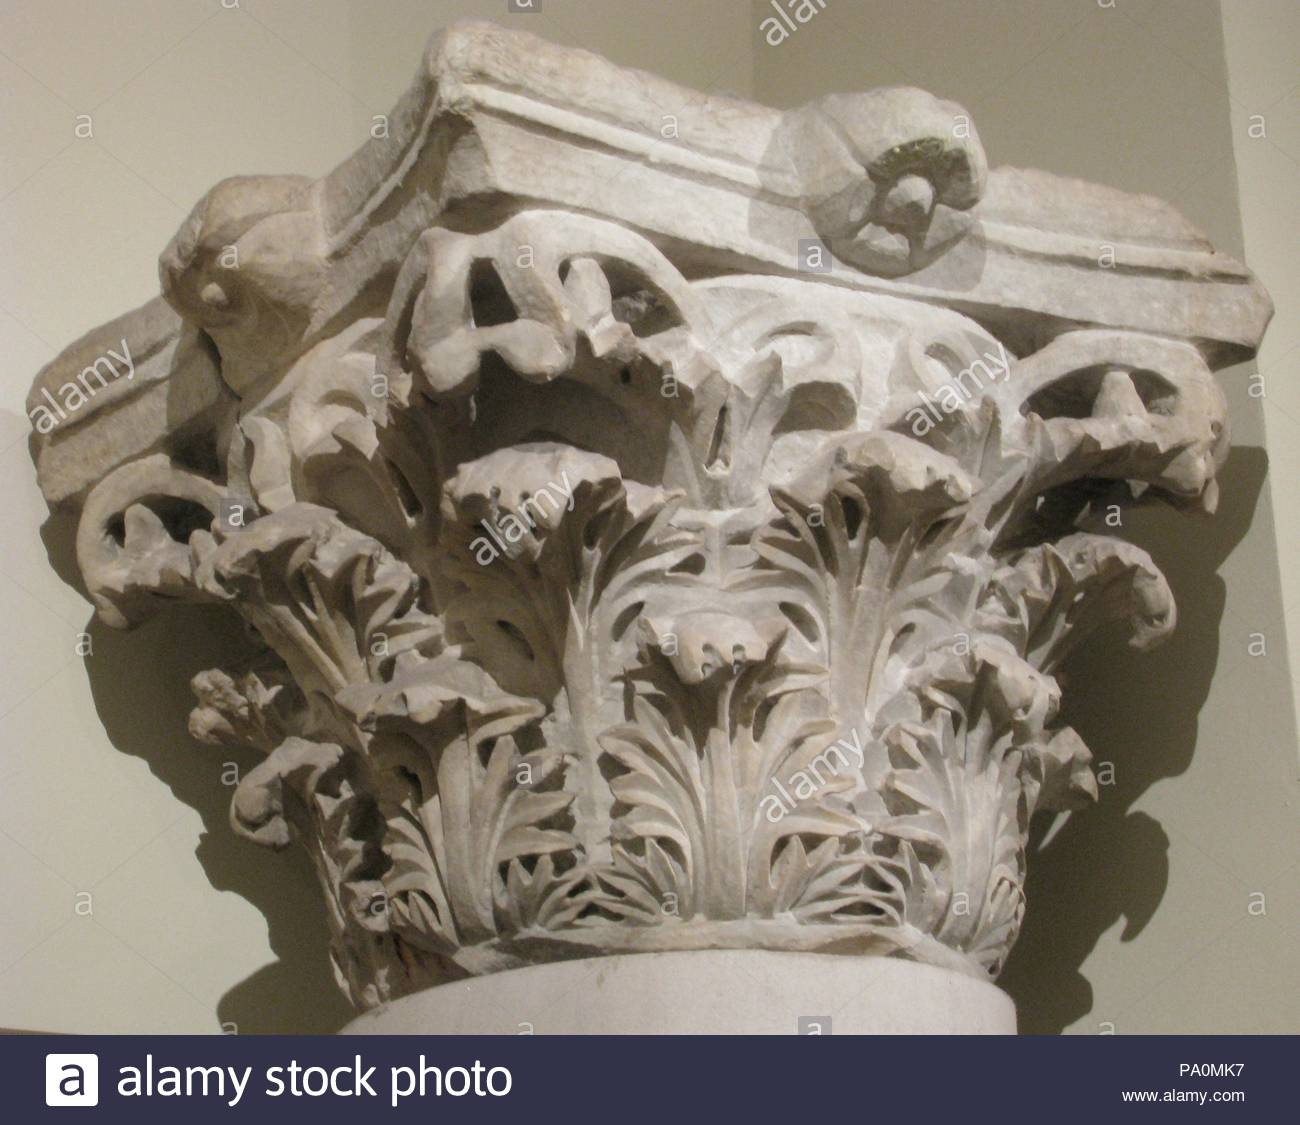 Capital with Acanthus Leaves, 4th century, Made in Egypt, Marble, Sculpture, Marble was often imported from quarries near Constantinople. This capital is carved in the classical Corinthian style, based on the shape of acanthus leaves. - Stock Image